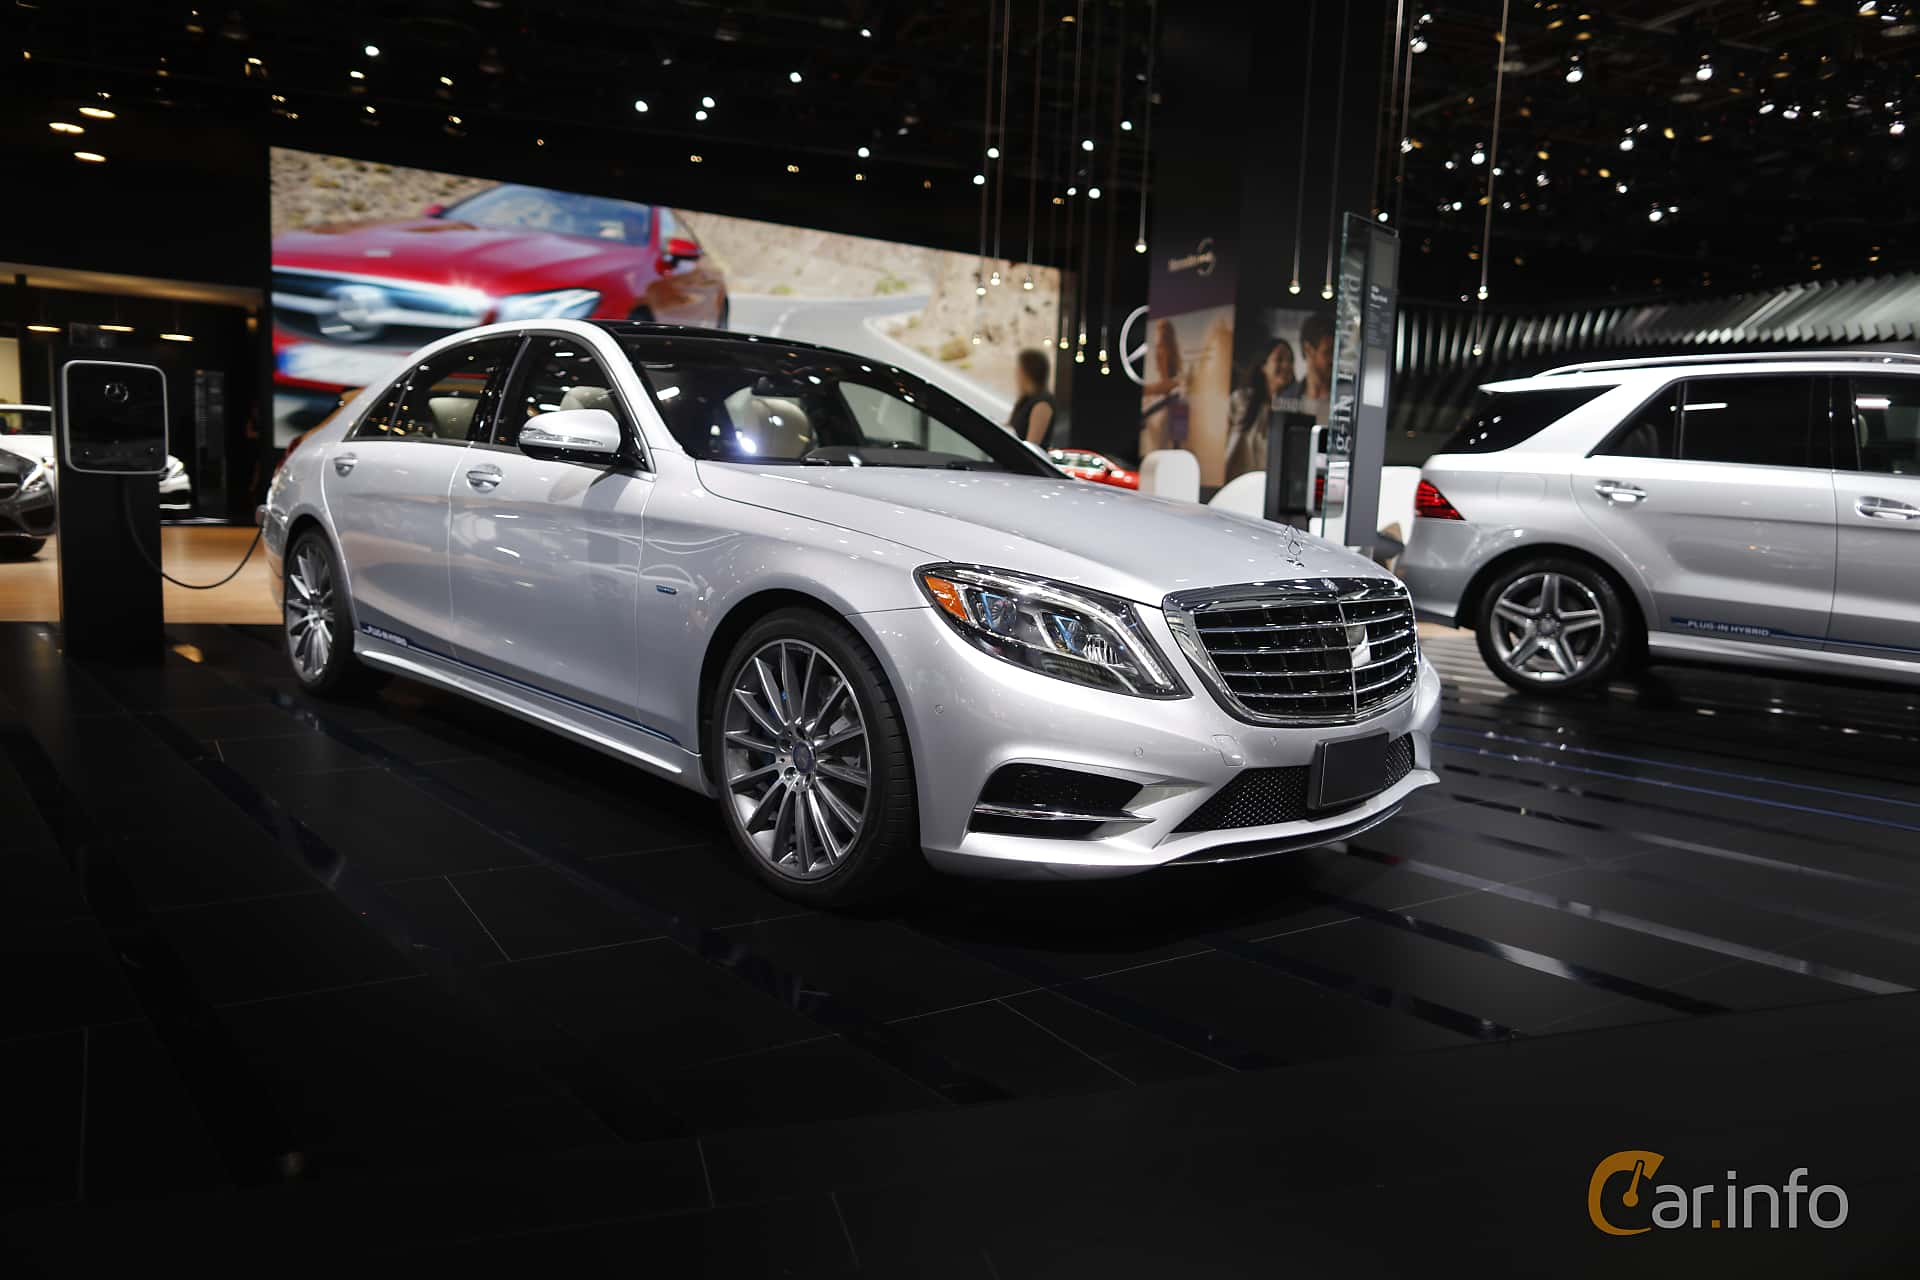 Mercedes-Benz S 500 e L 3.0 V6 7G-Tronic Plus, 442hp, 2017 at North American International Auto Show 2017